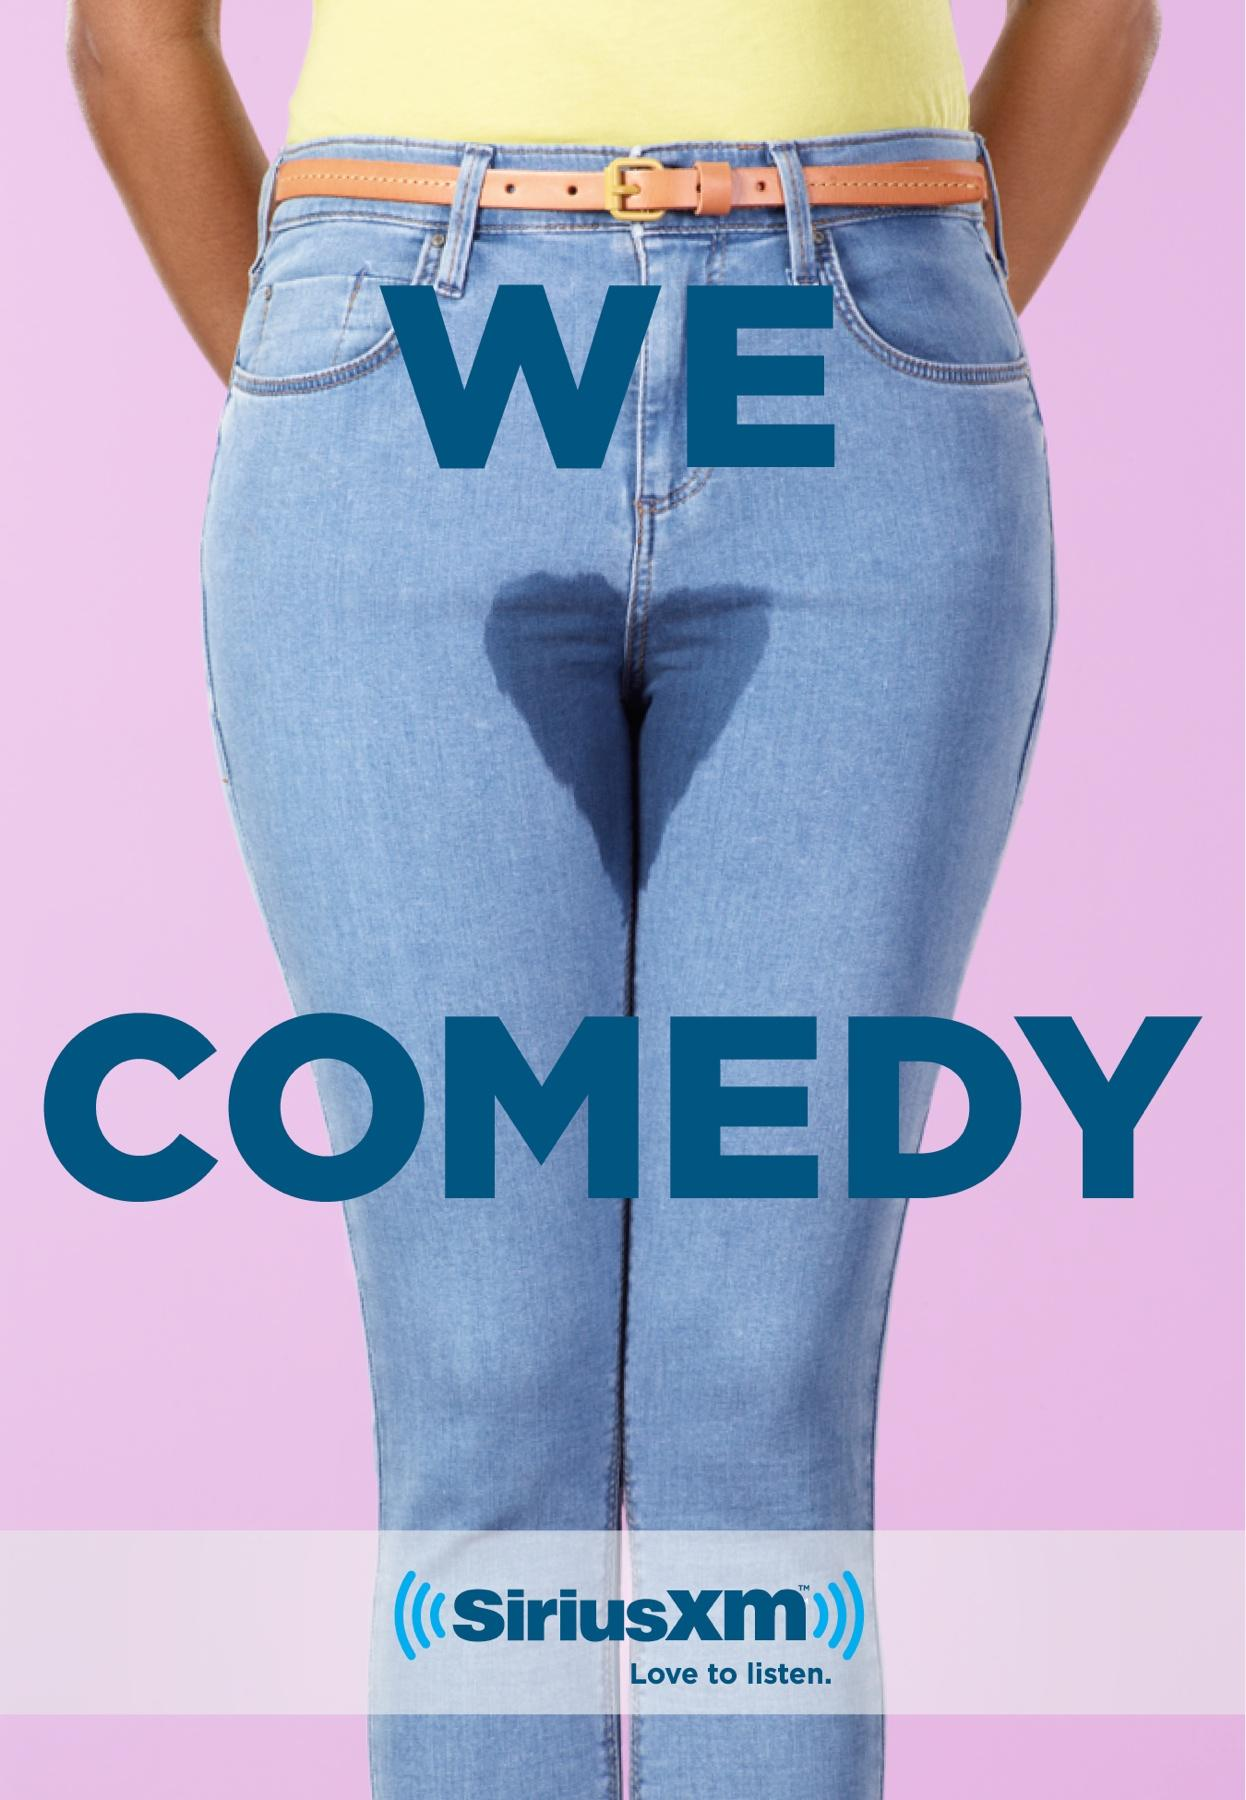 Sirius Print Ad -  We Love Comedy, 2